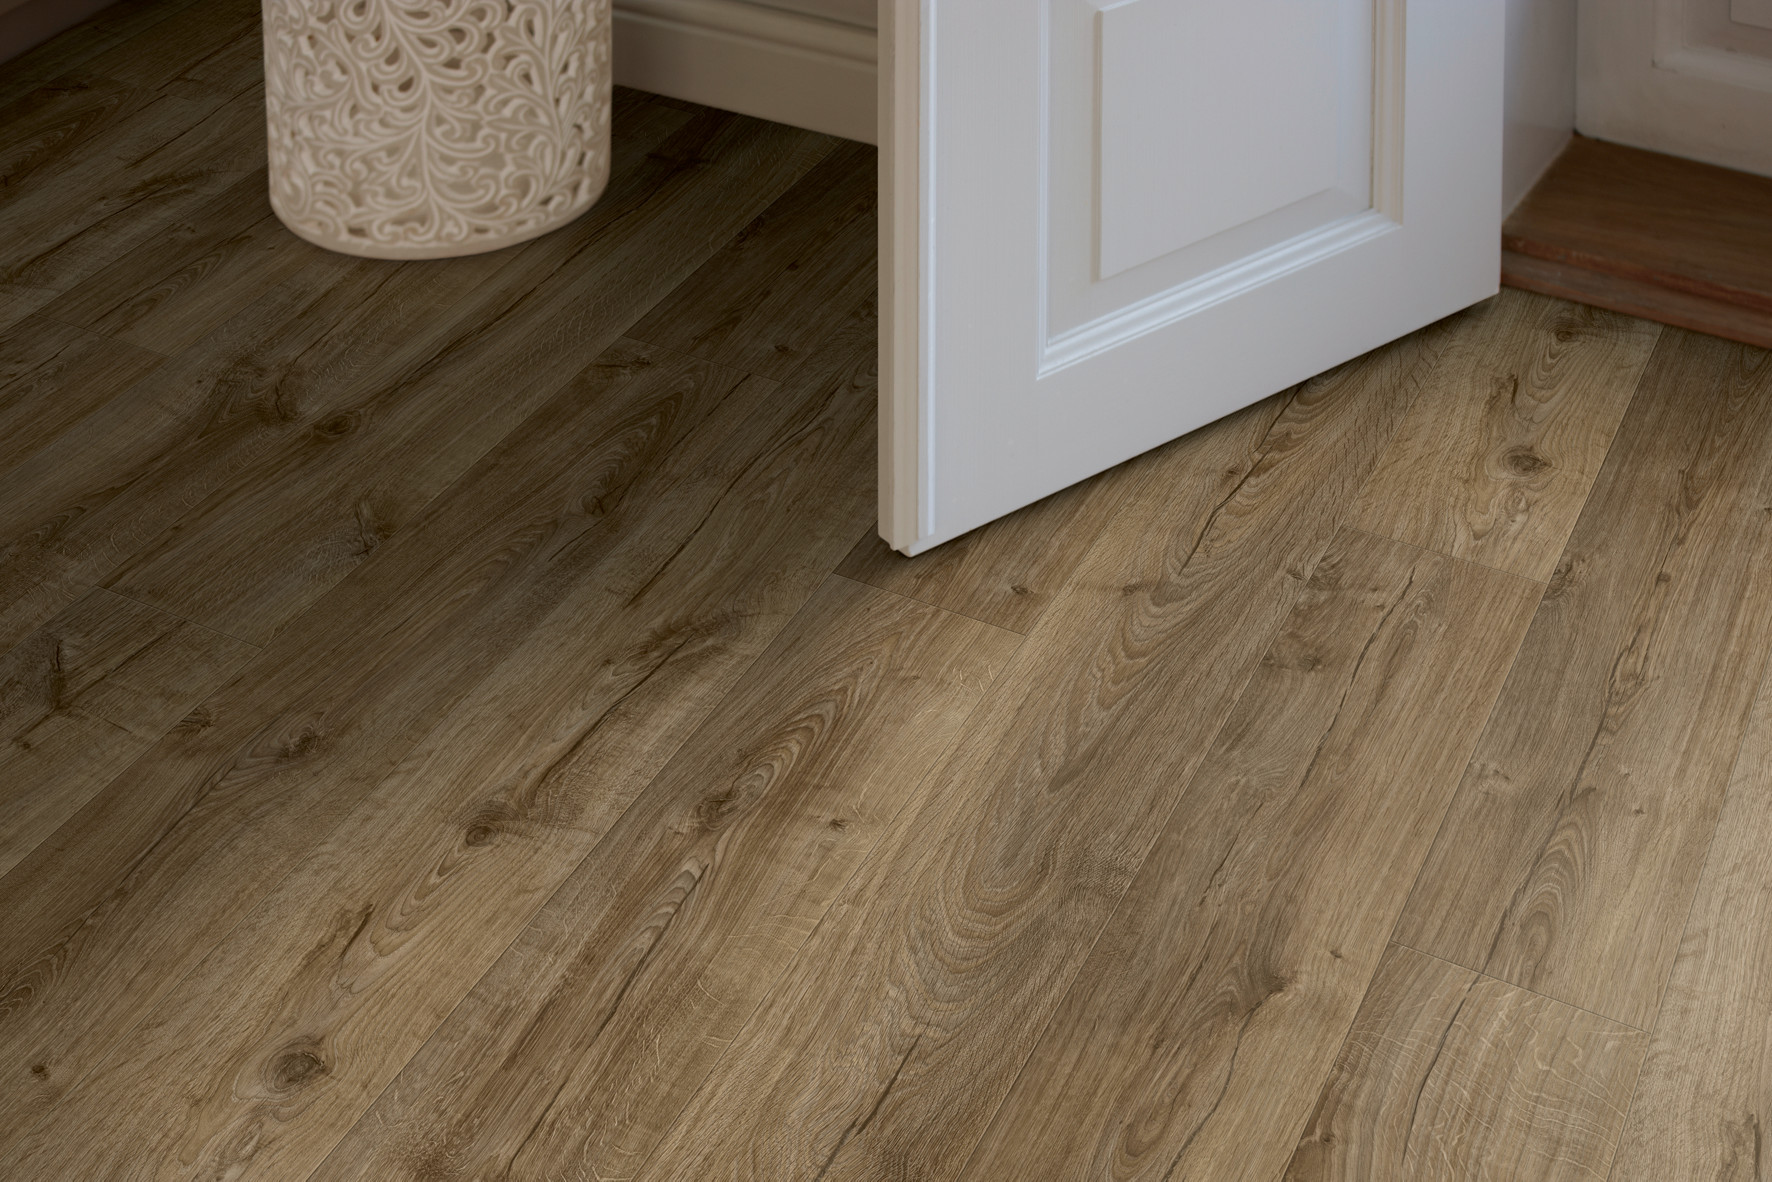 Pergo Farmhouse Oak Getinge Mattcenter Getinge Mattcenter